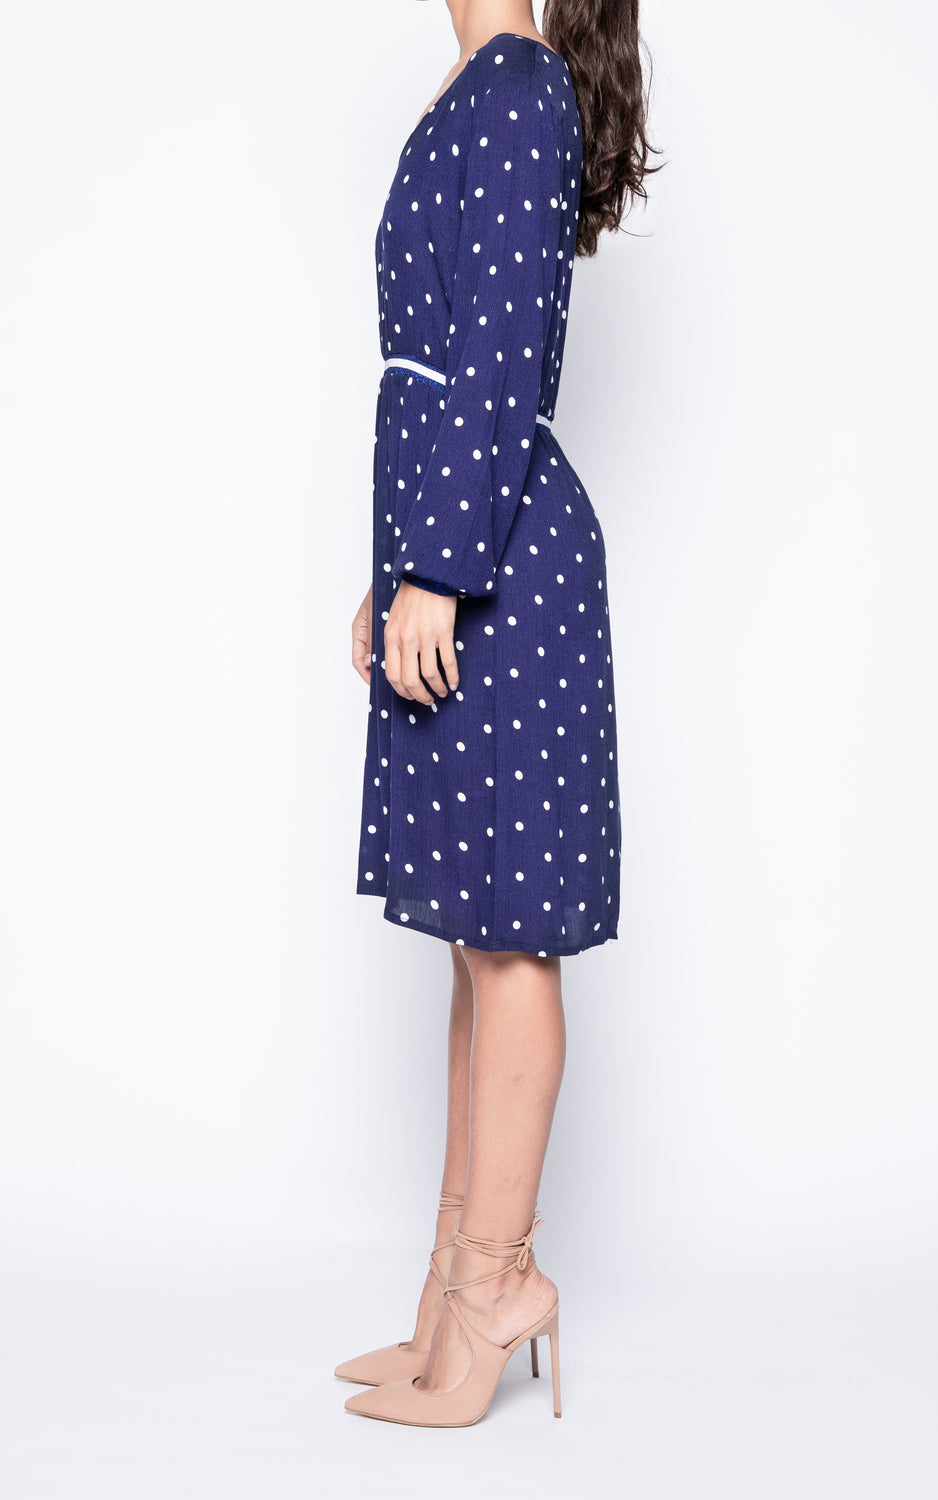 Elizabeth Polka Dot V-Neck Dress